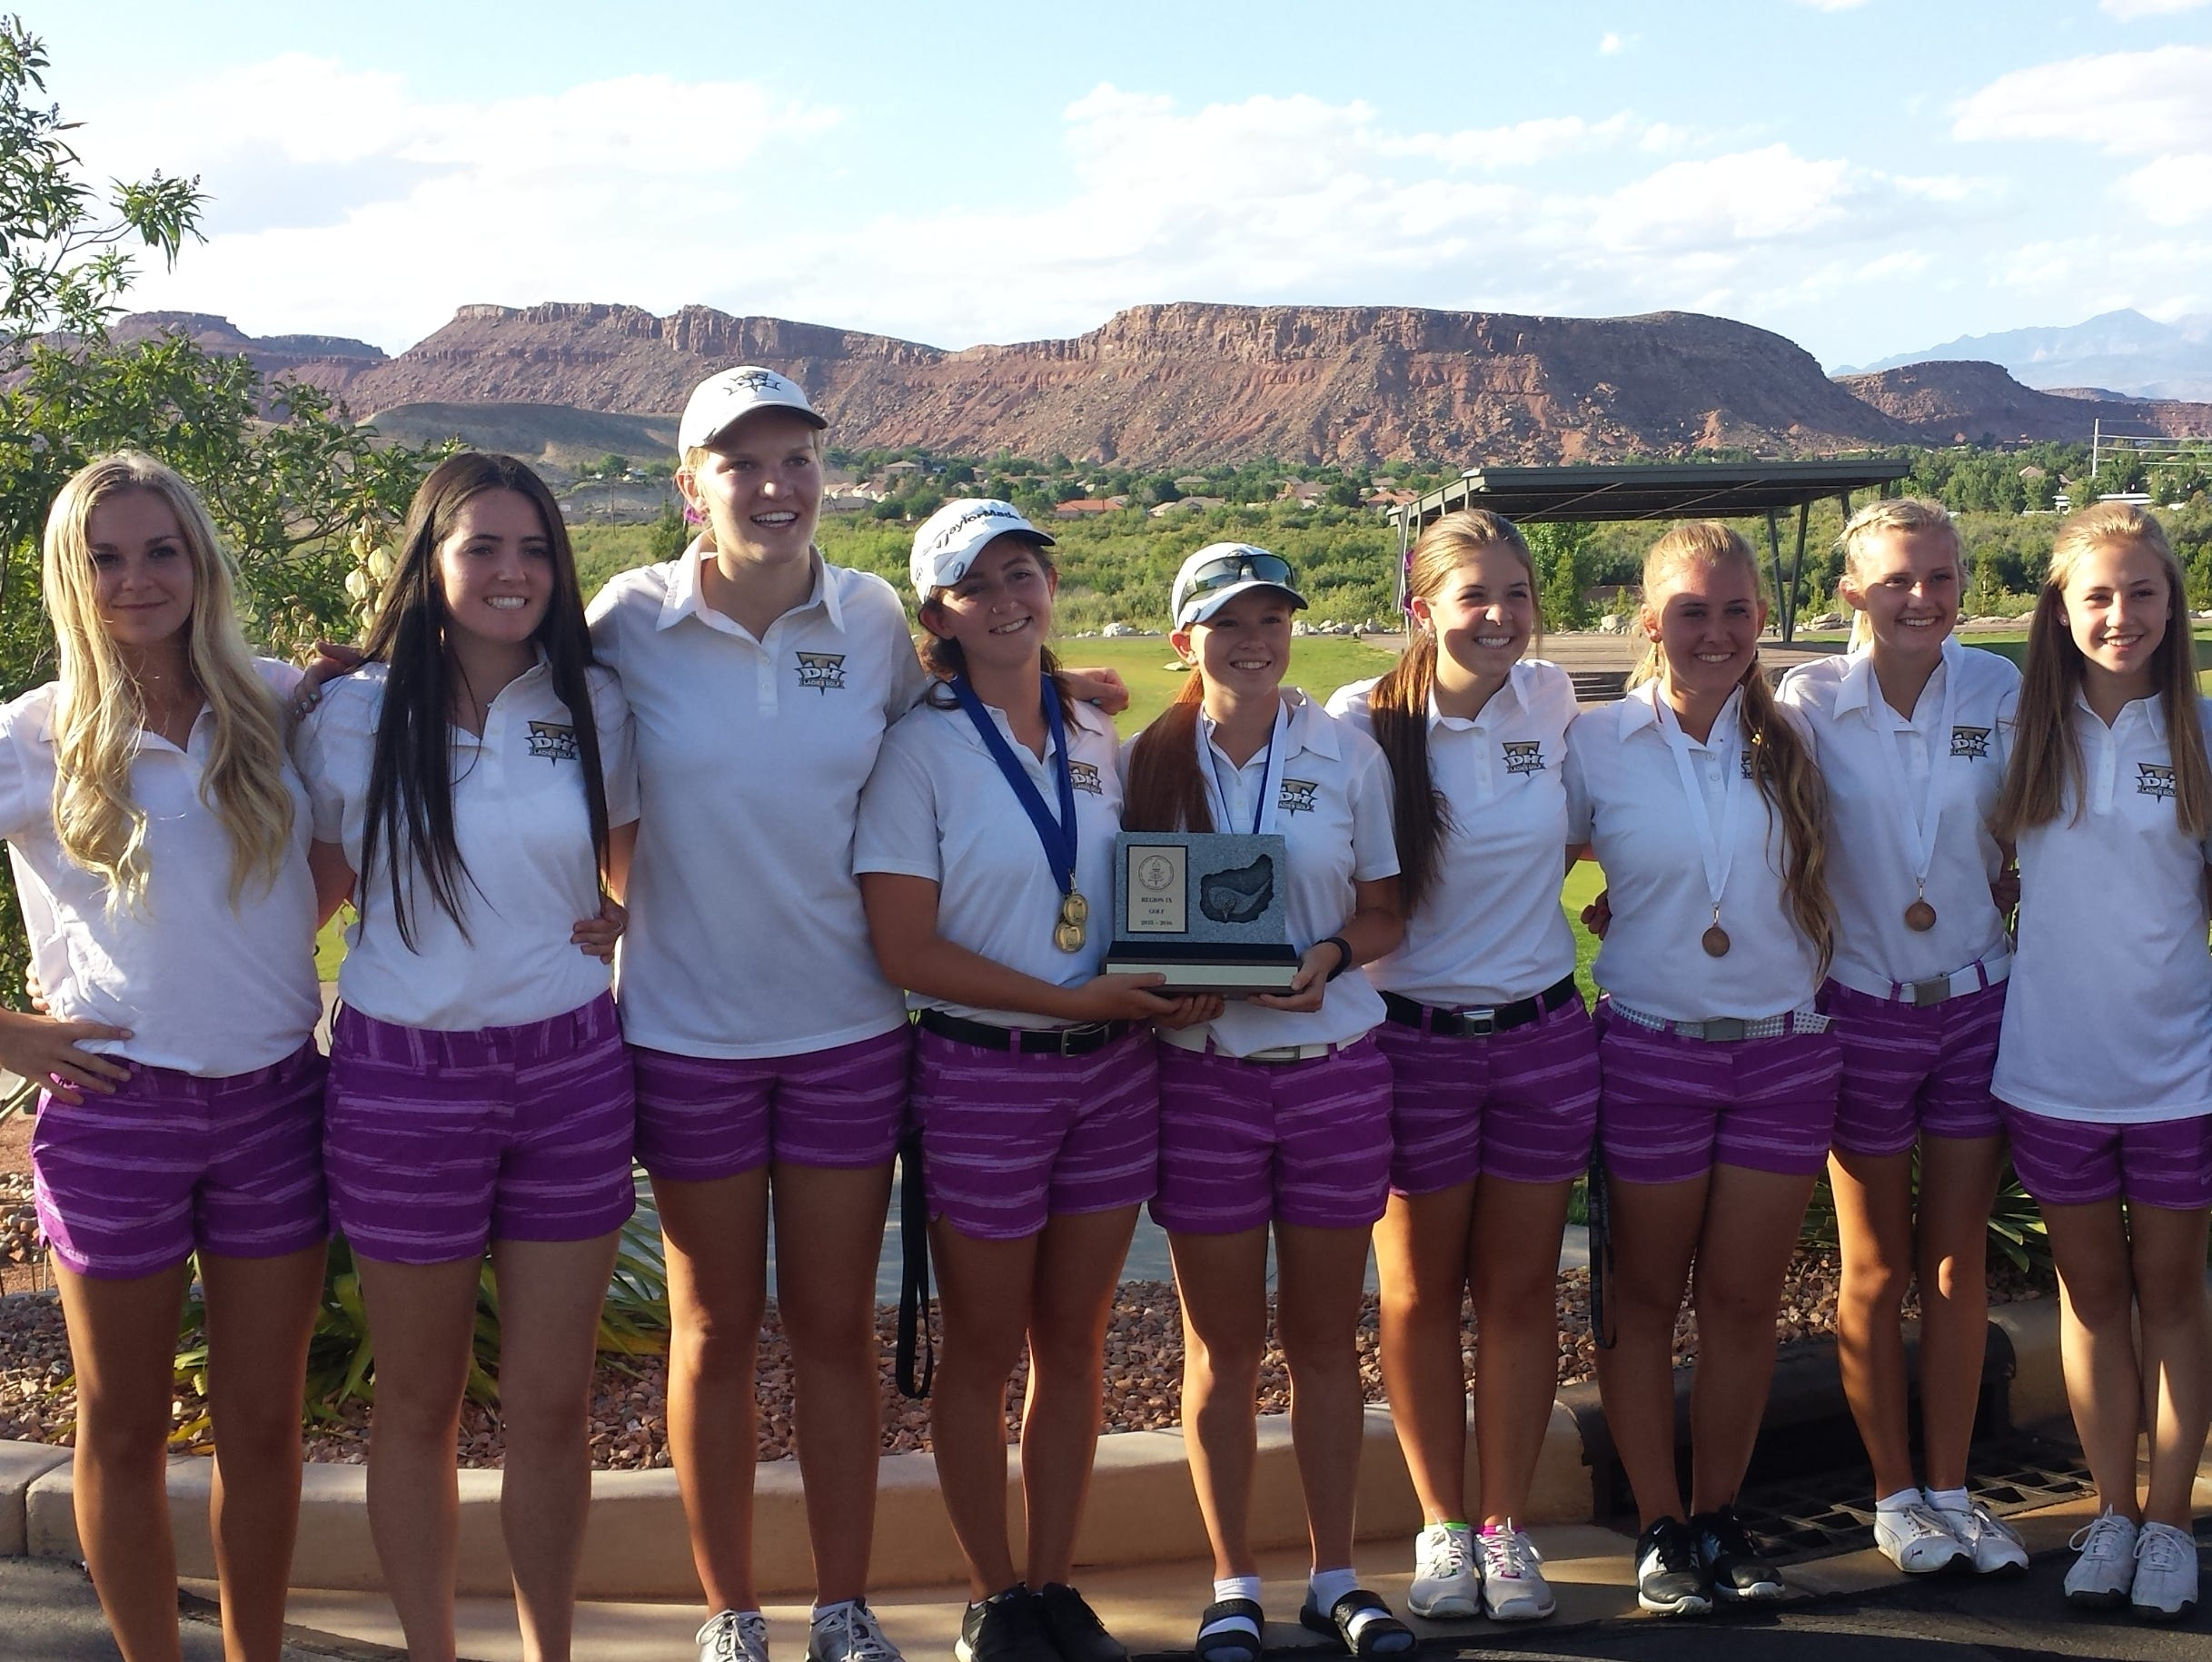 Desert Hills golfers smile after winning the Region 9 title at SunRiver Golf Club. The Thunder hold state records for most championships (6) as well as consecutive championships (6) and are once again the favorites to win the 3A tournament at Soldier Hollow this week.